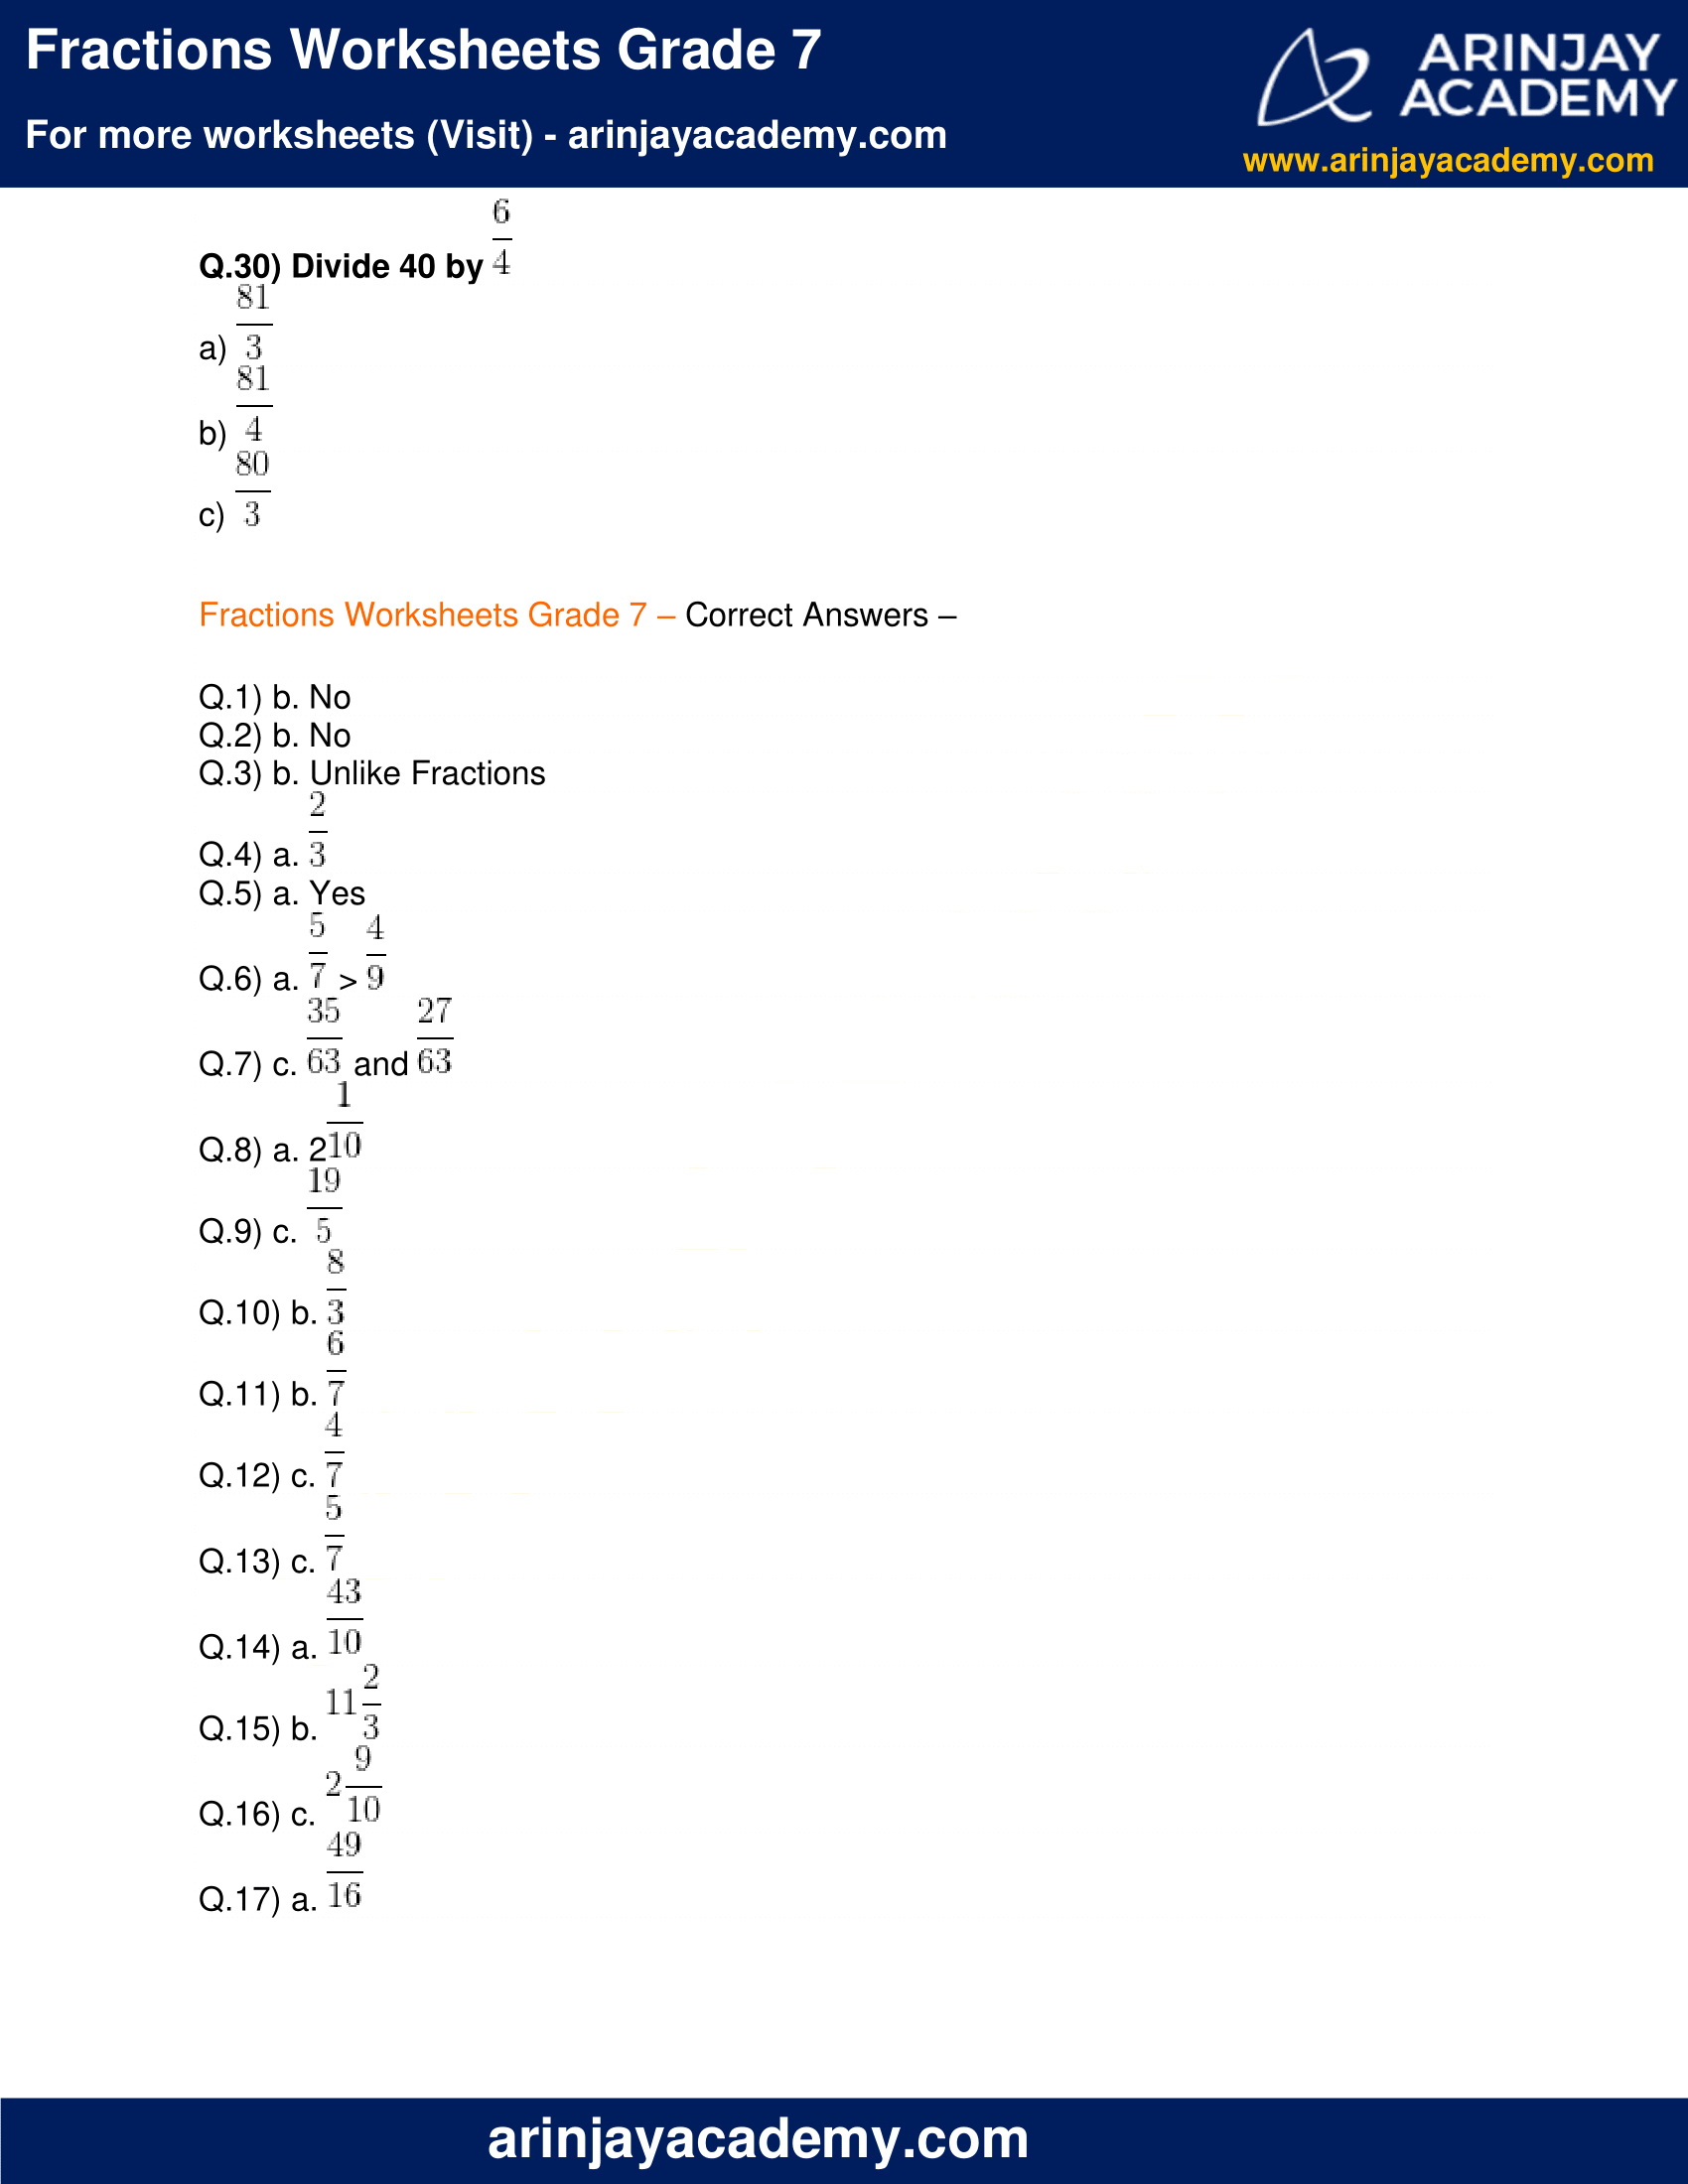 Fractions Worksheets Grade 7 image 7